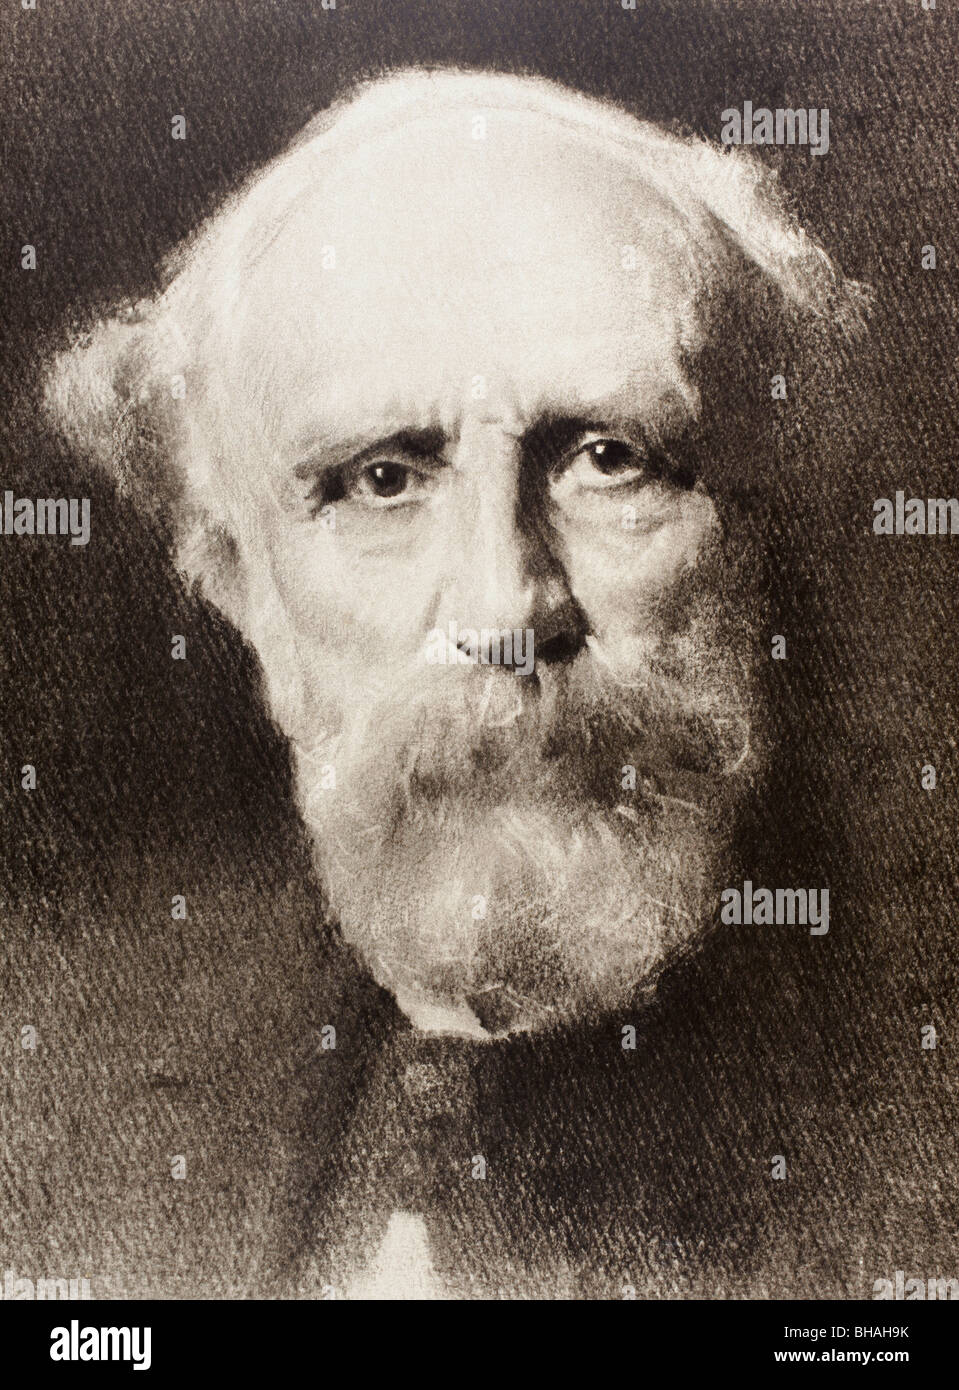 Alexandre-Félix-Joseph Ribot, 1842 to 1923. French politician, four times Prime Minister. - Stock Image